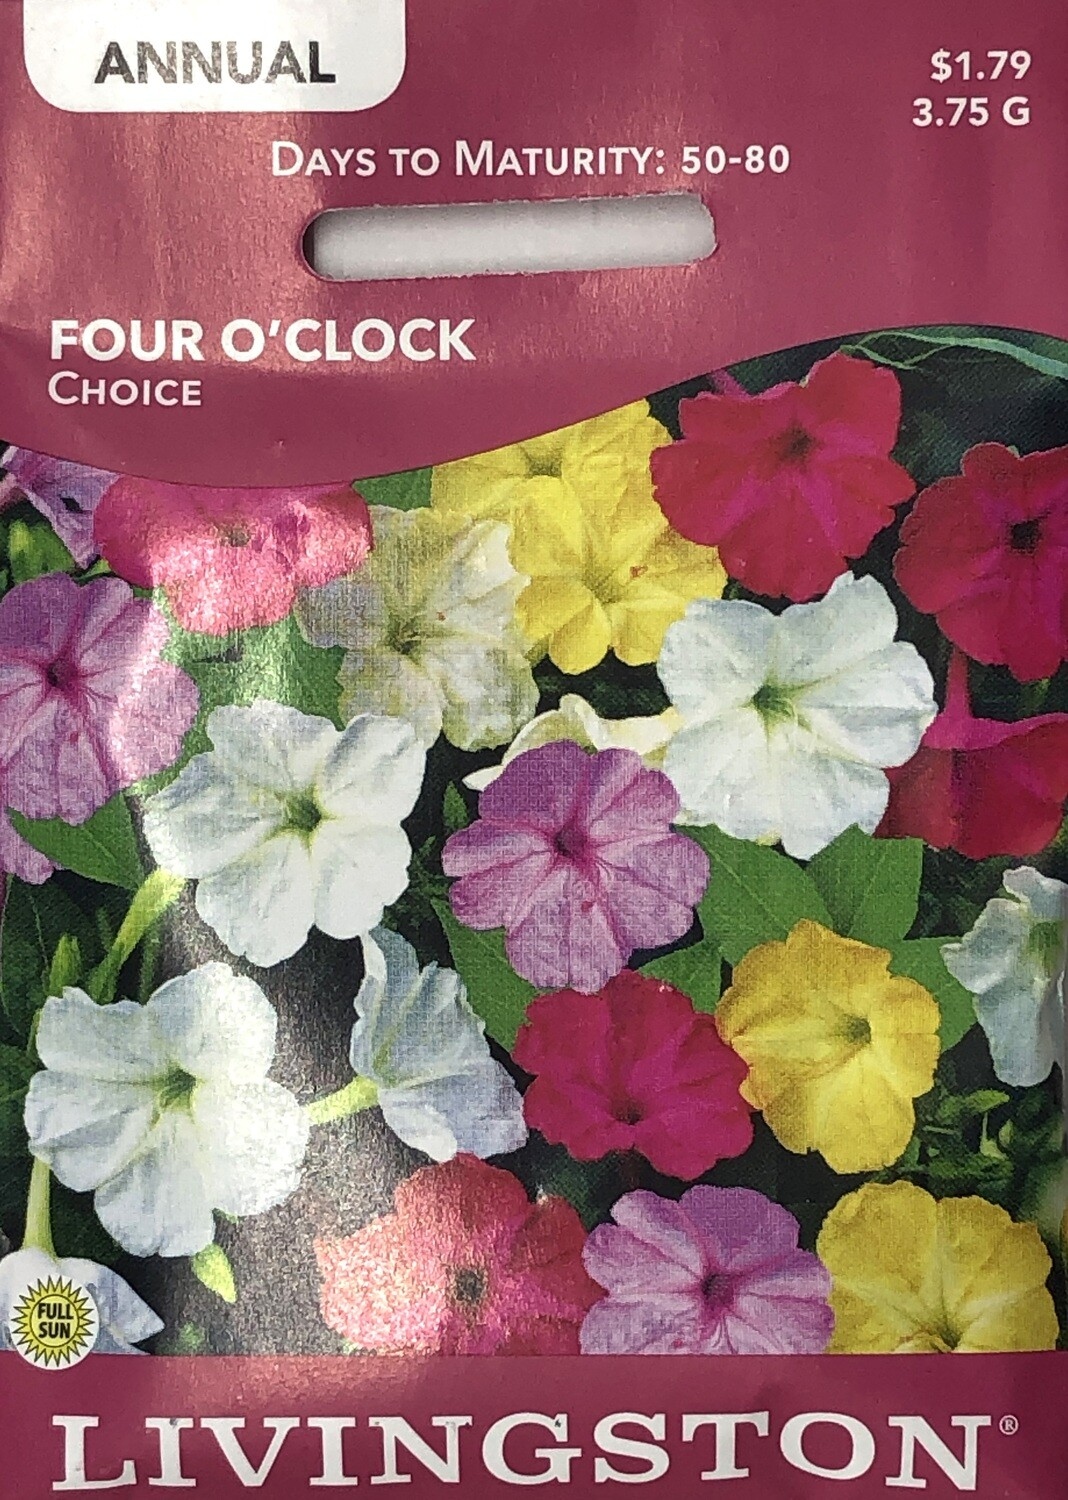 FOUR O'CLOCK - CHOICE